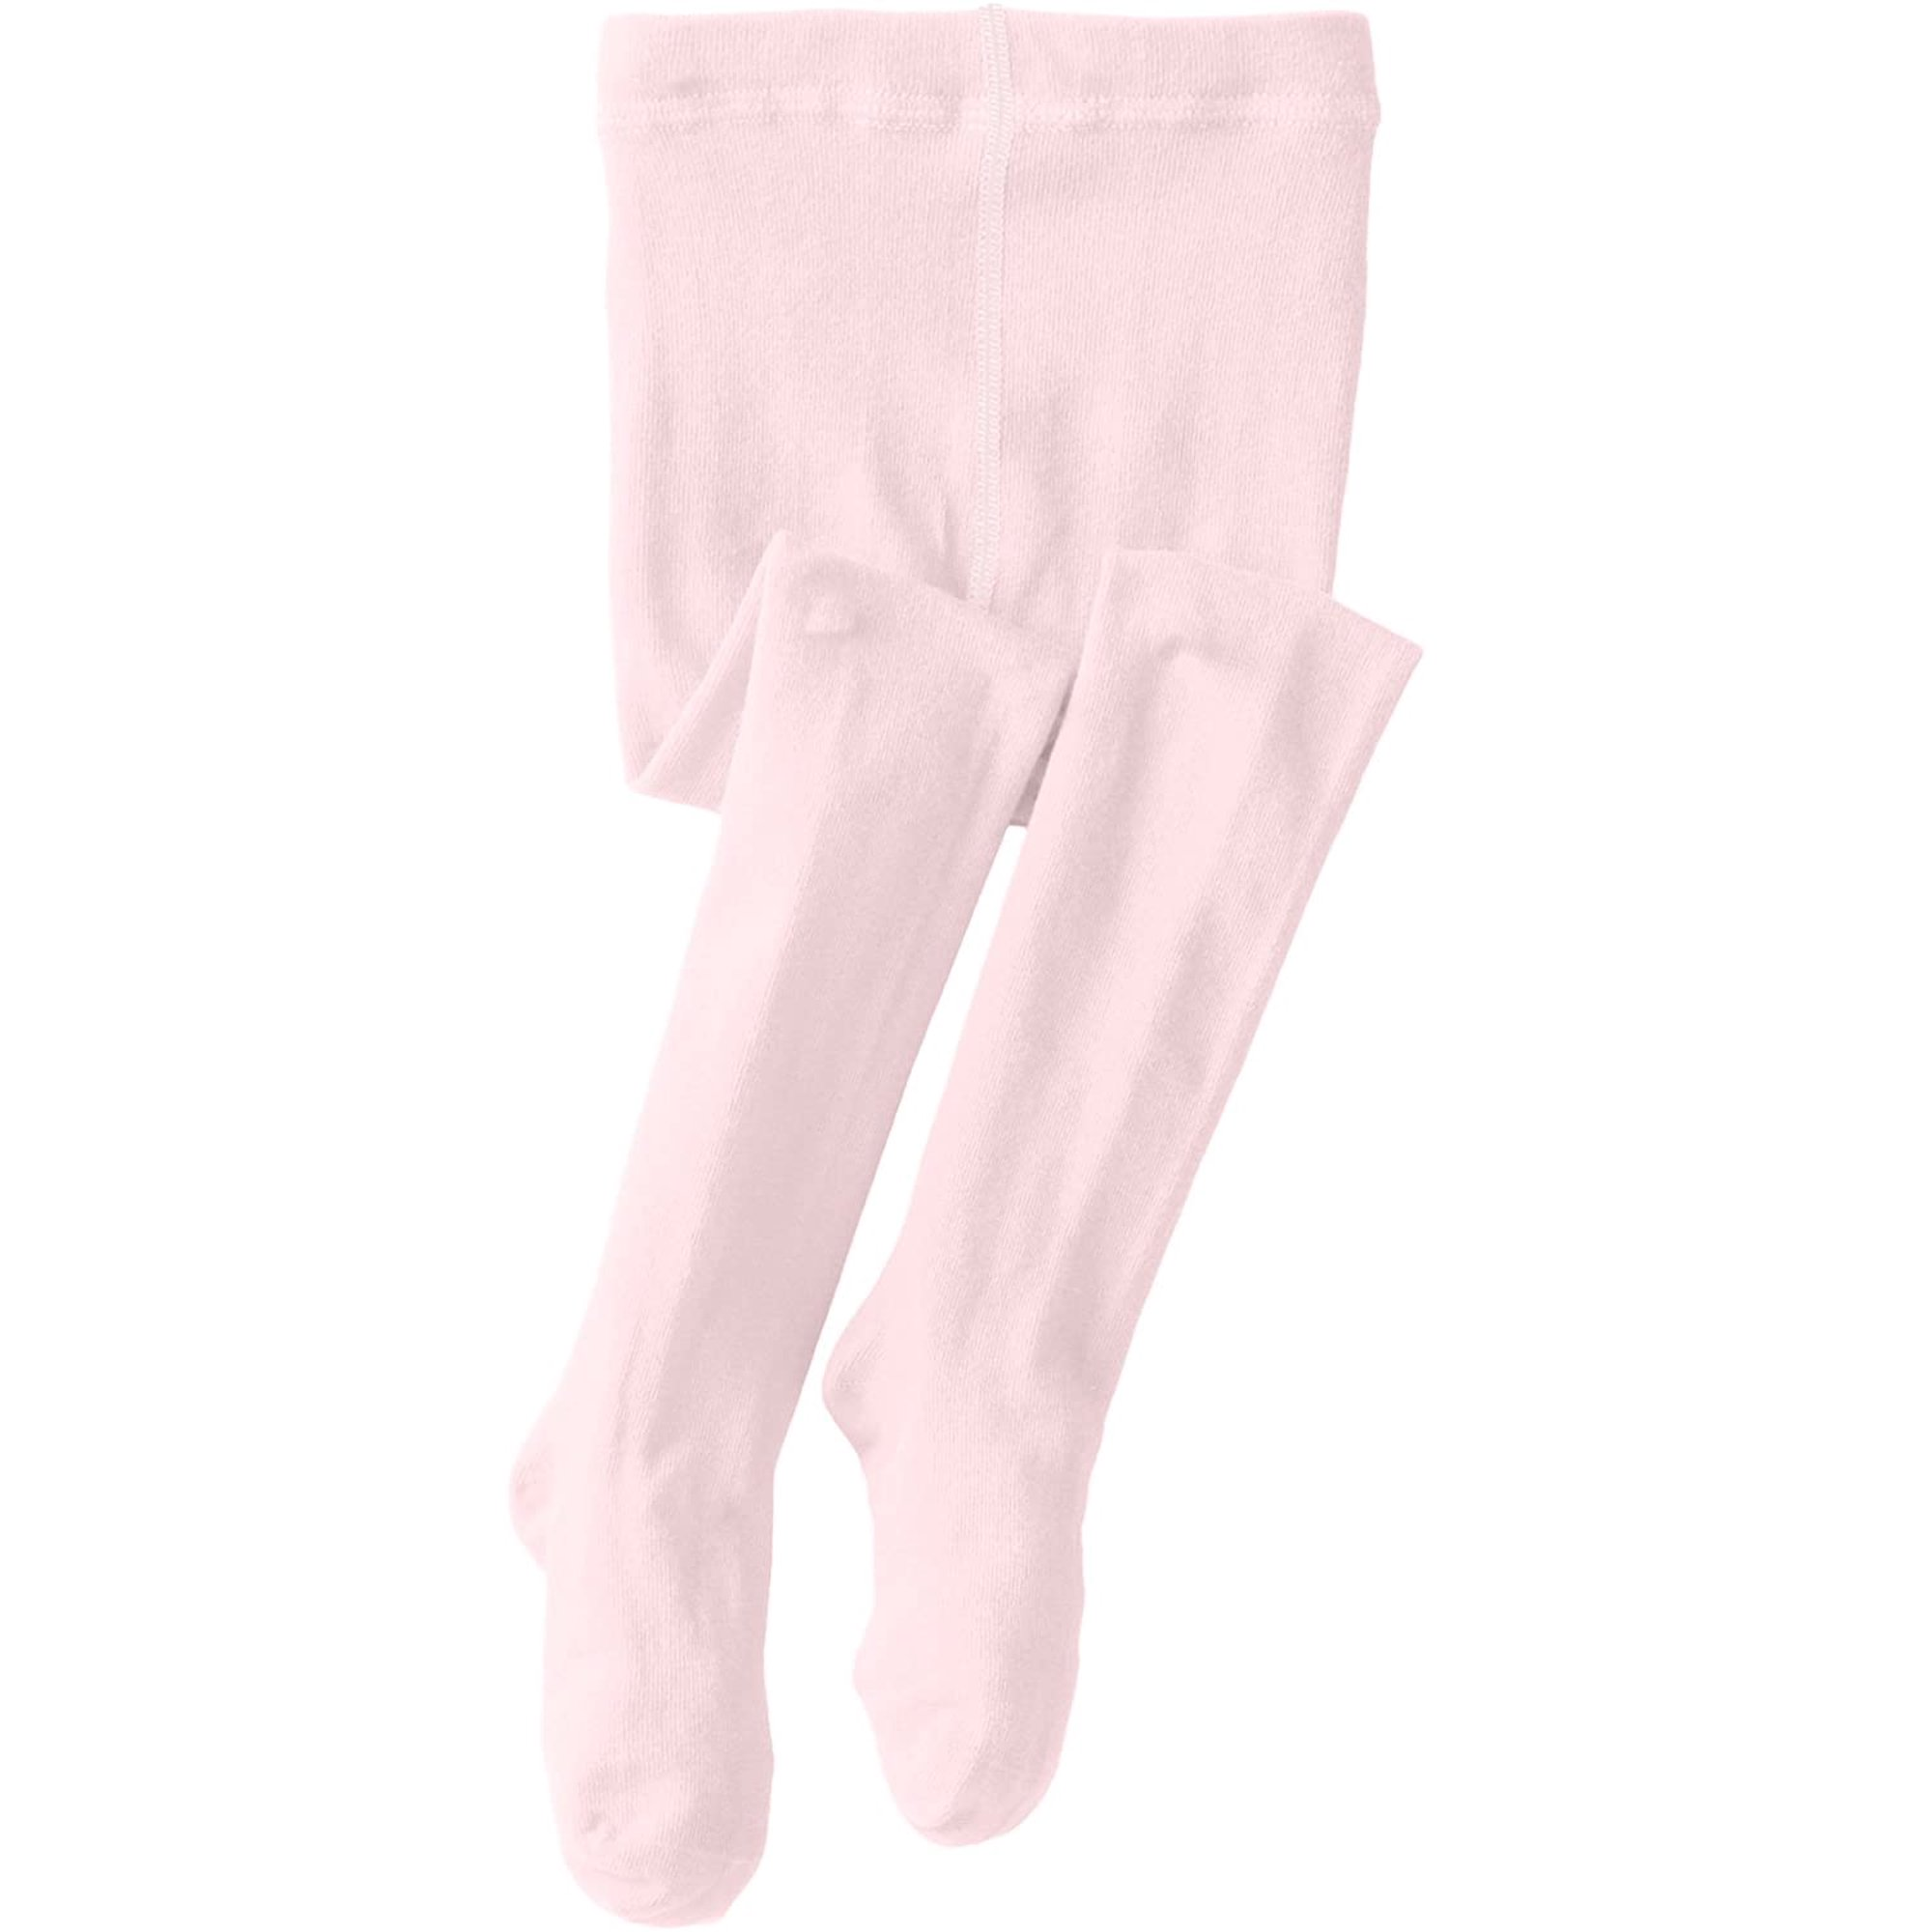 Image result for Jefferies Socks Girls' Seamless Organic Cotton Tights